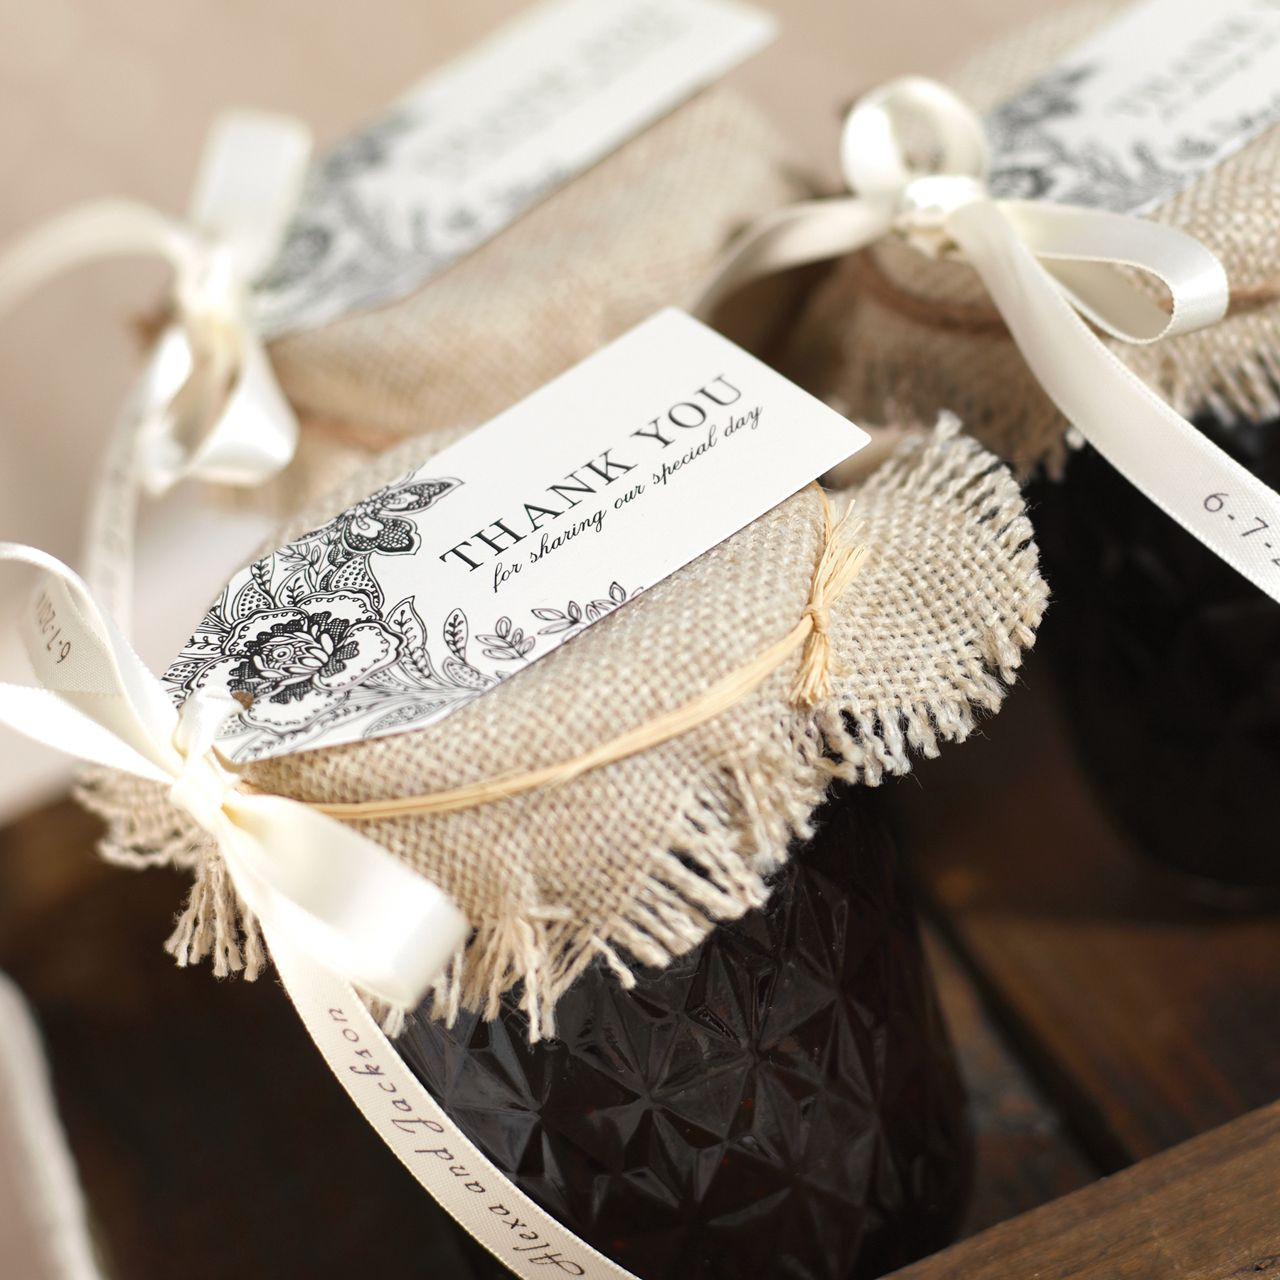 Dress up your homemade treats with burlap! | Rustic Glam Wedding ...